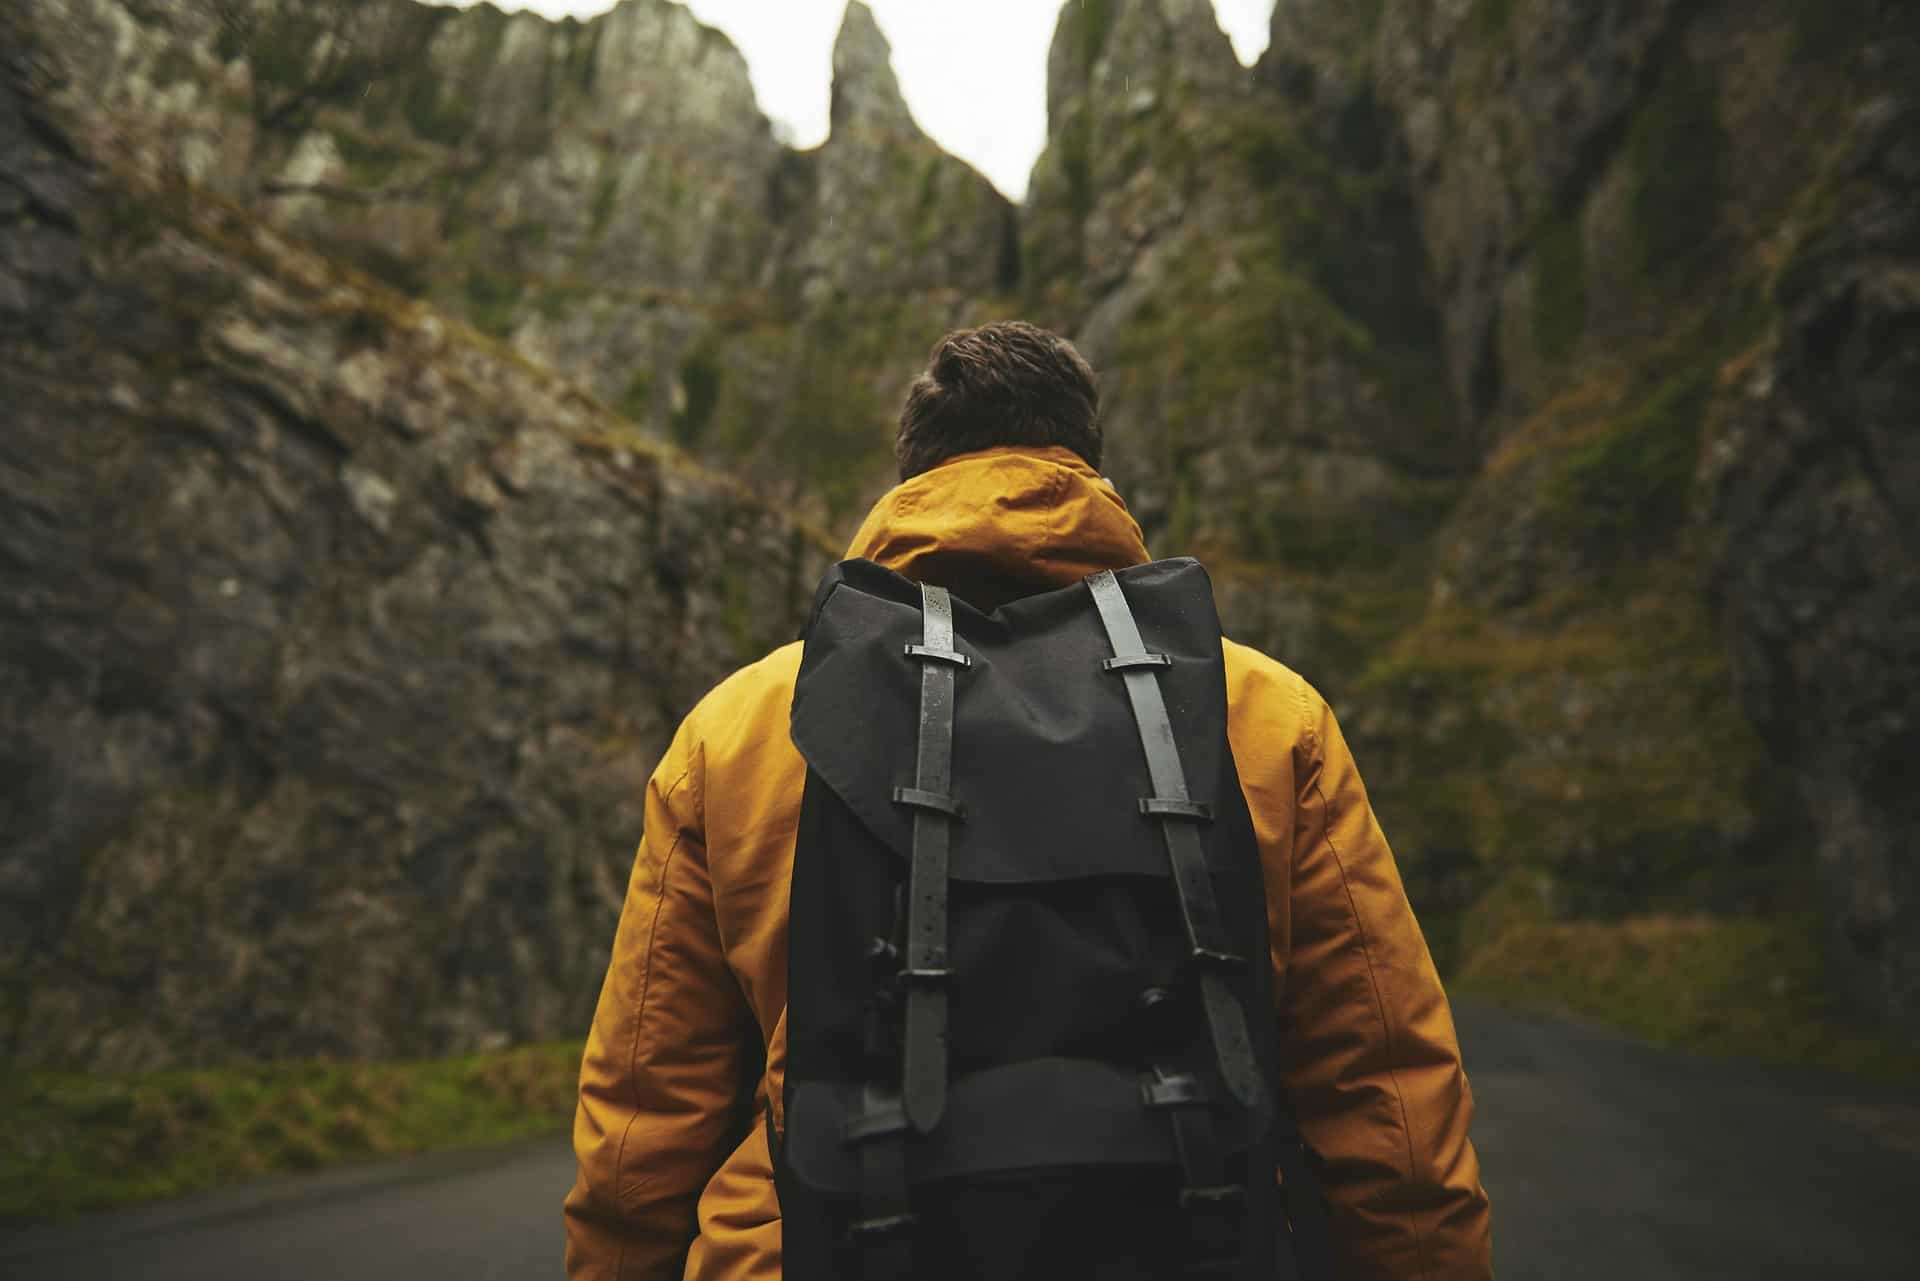 Backpack Bags: Tips To Choose The Best One